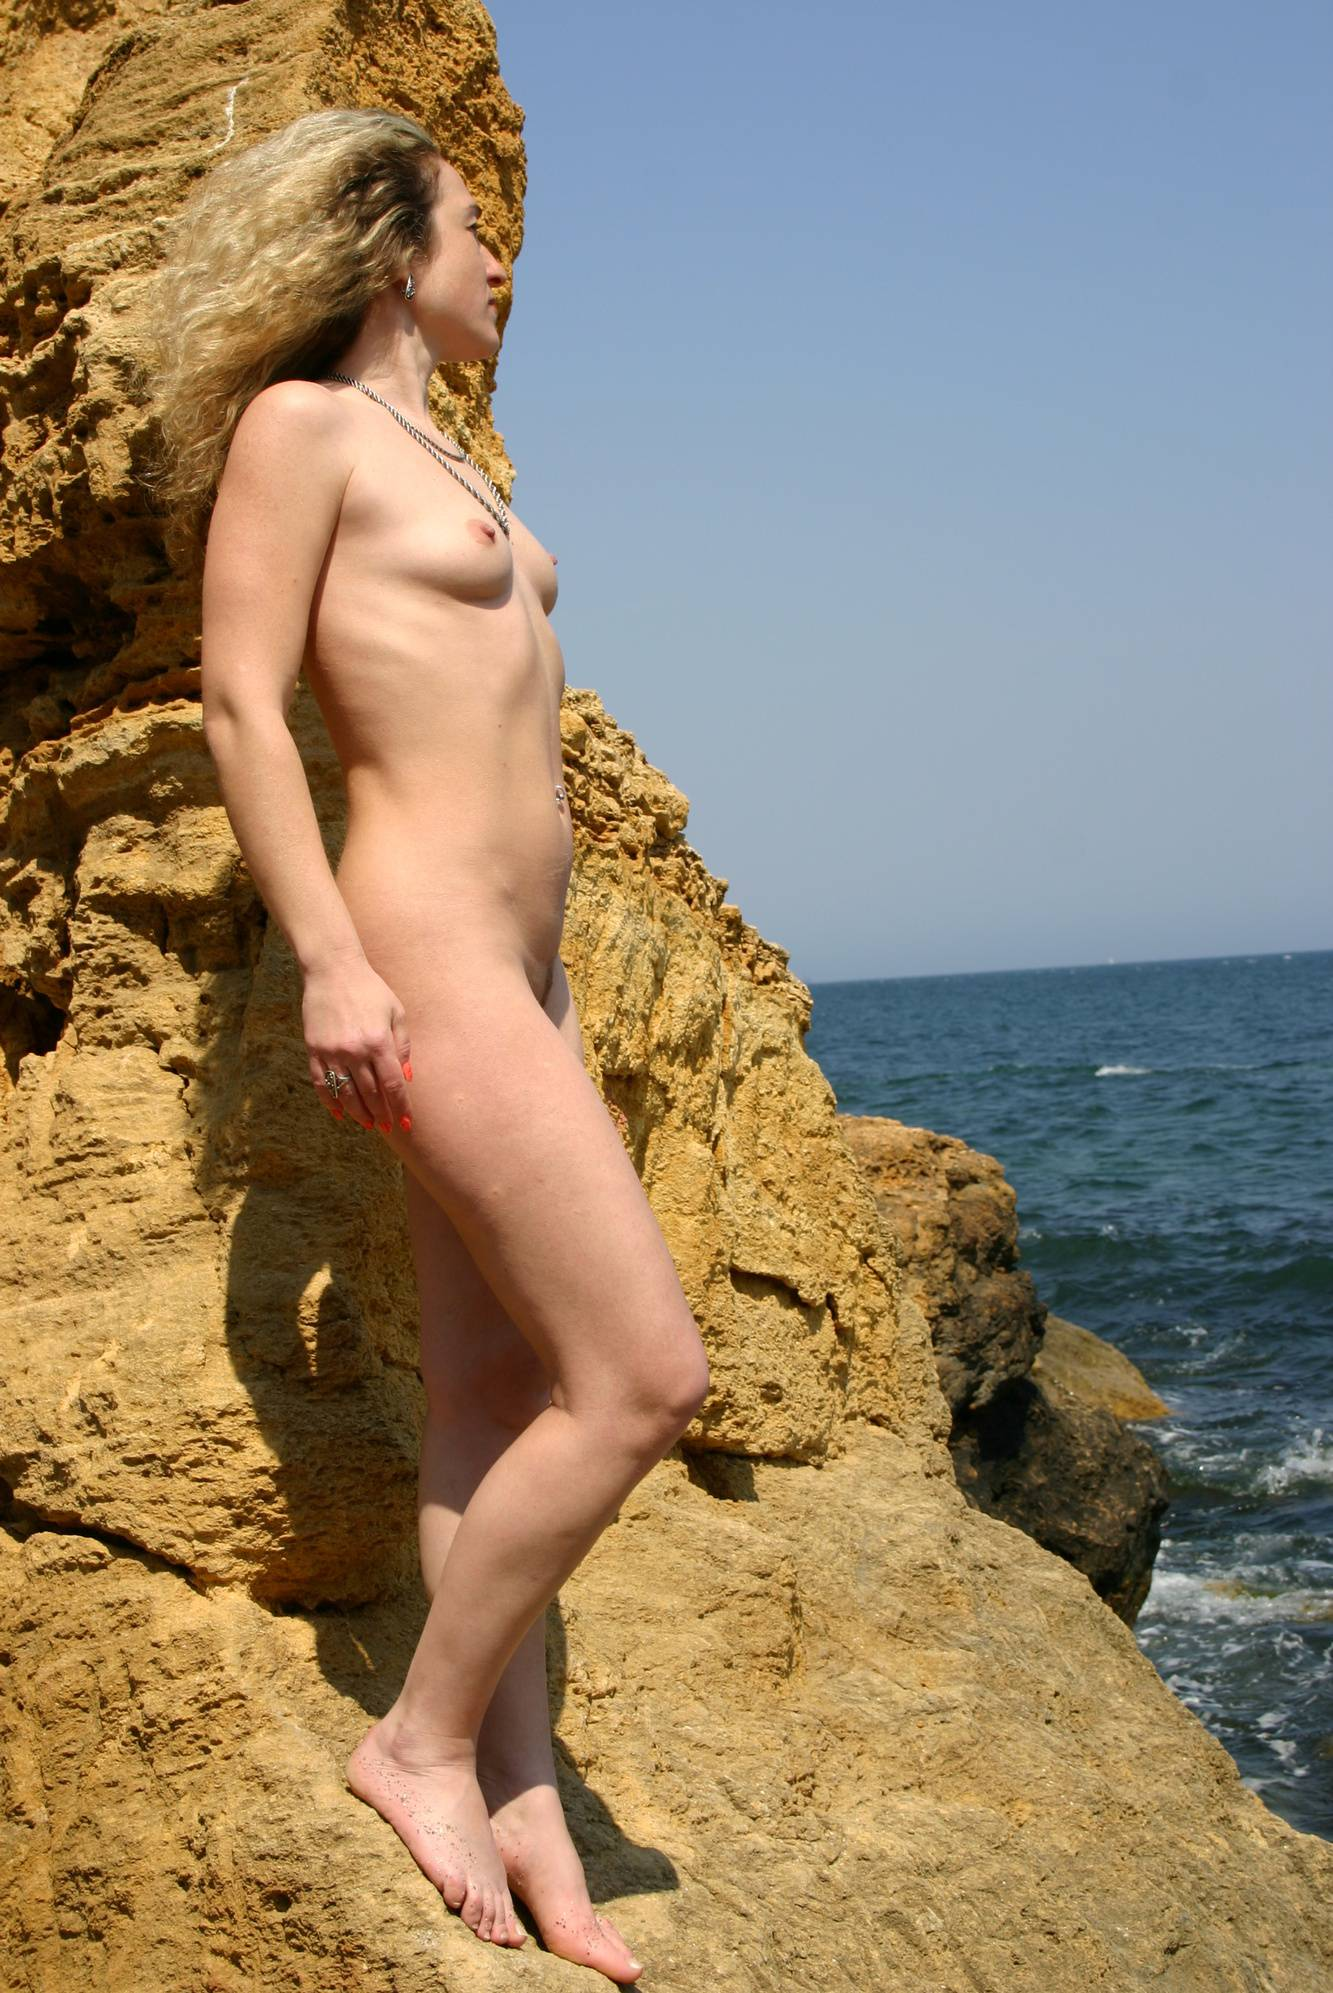 Pure Nudism Images-Mothers Rock Formations - 2